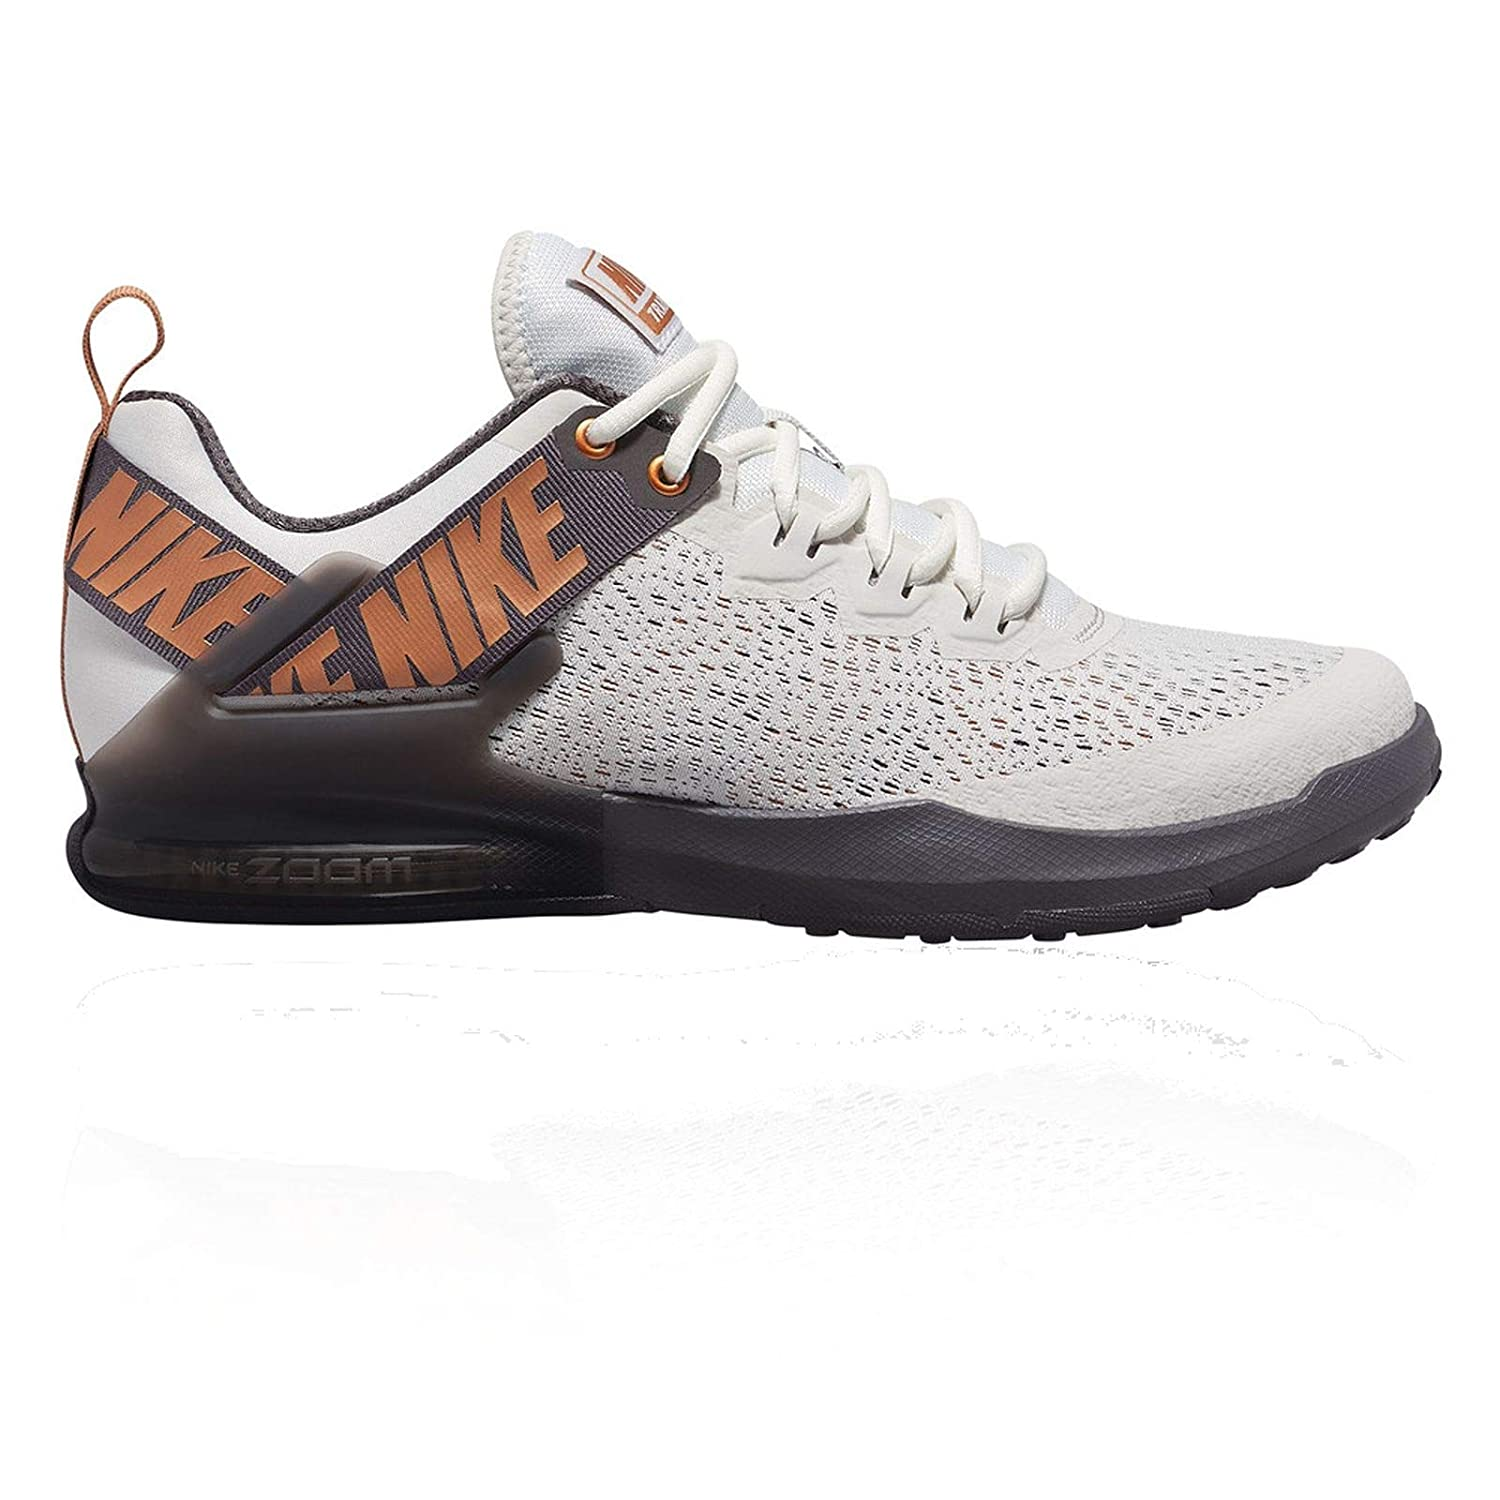 MultiCouleure (Platinum Tint Metallic Copper 7) Nike Zoom Domination TR 2, Chaussures de Fitness Homme